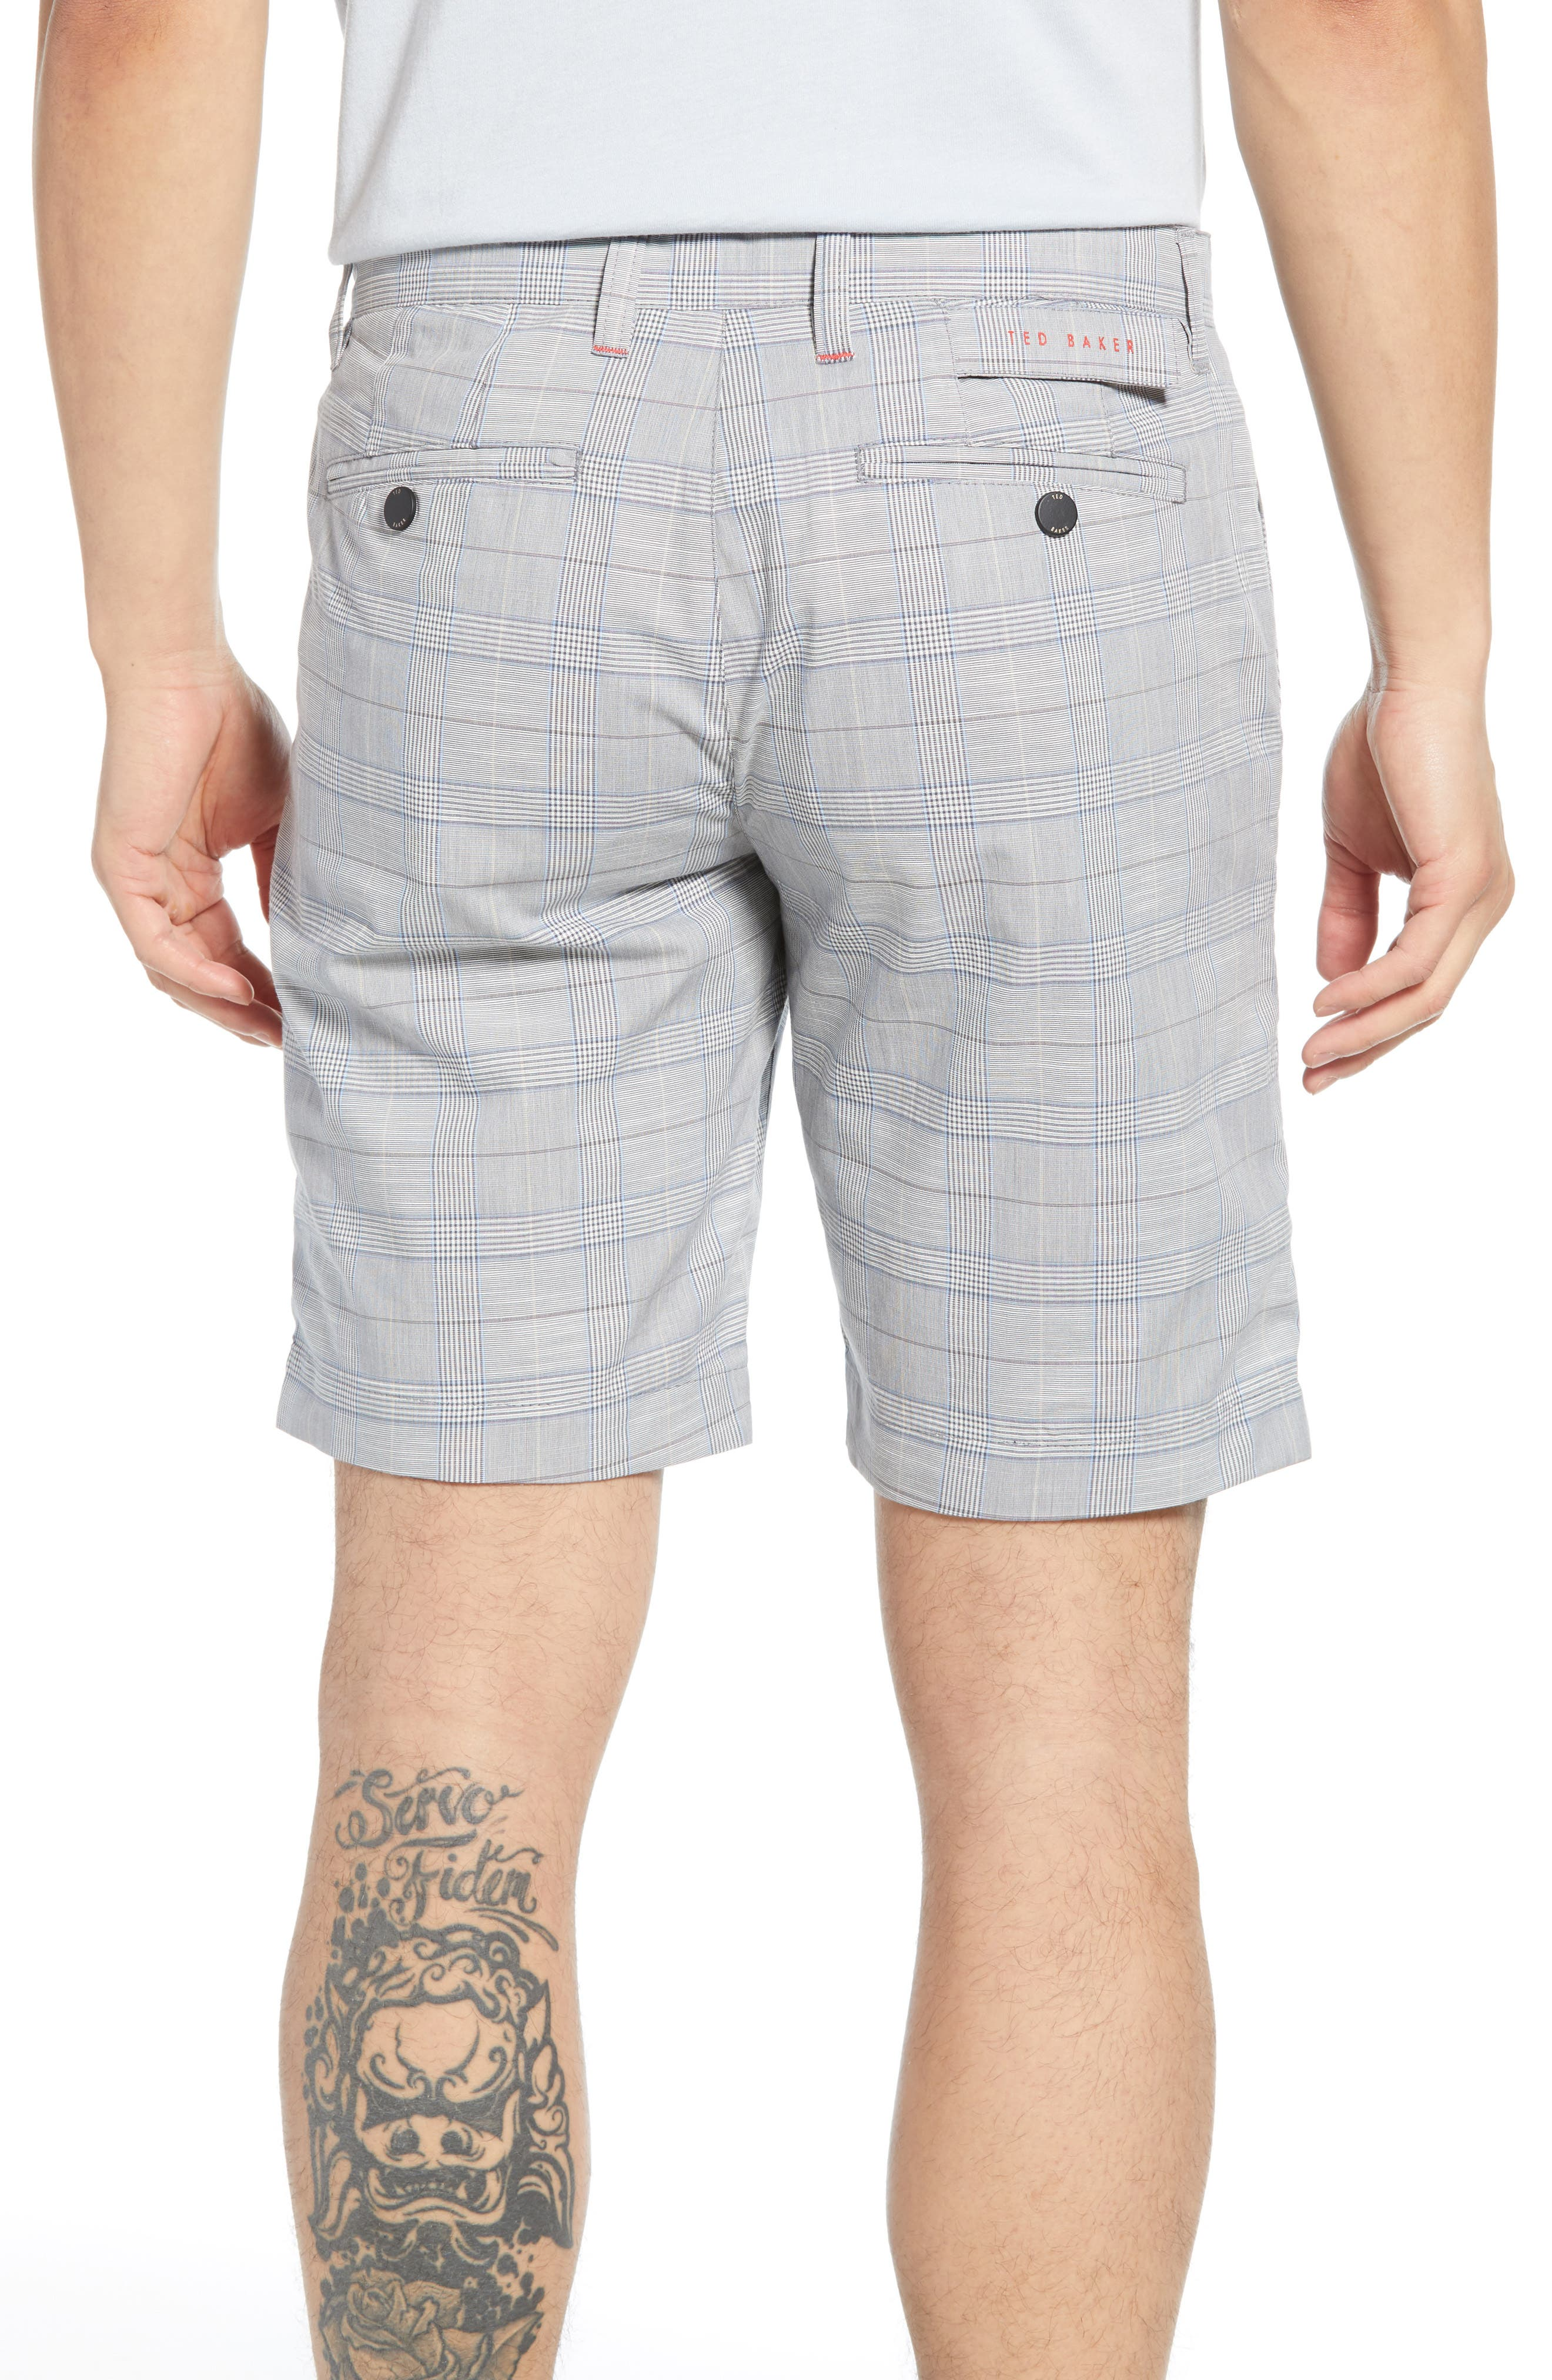 TED BAKER LONDON, Easiee Slim Fit Check Golf Shorts, Alternate thumbnail 2, color, GREY